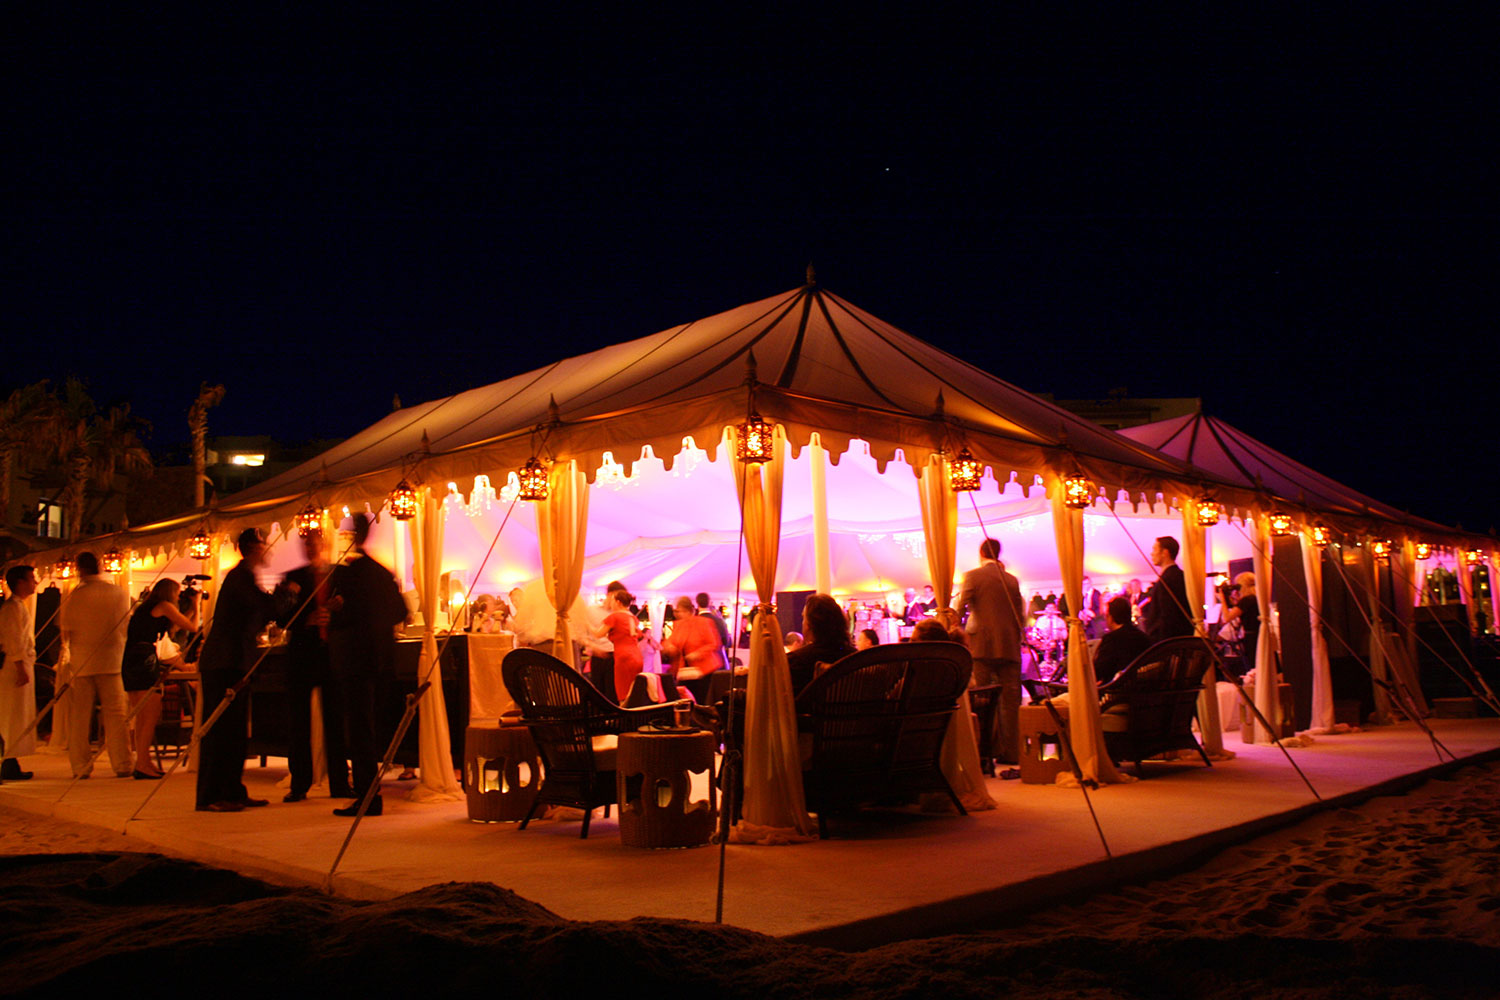 raj-tents-destination-weddings-cabo-tent-exterior.jpg